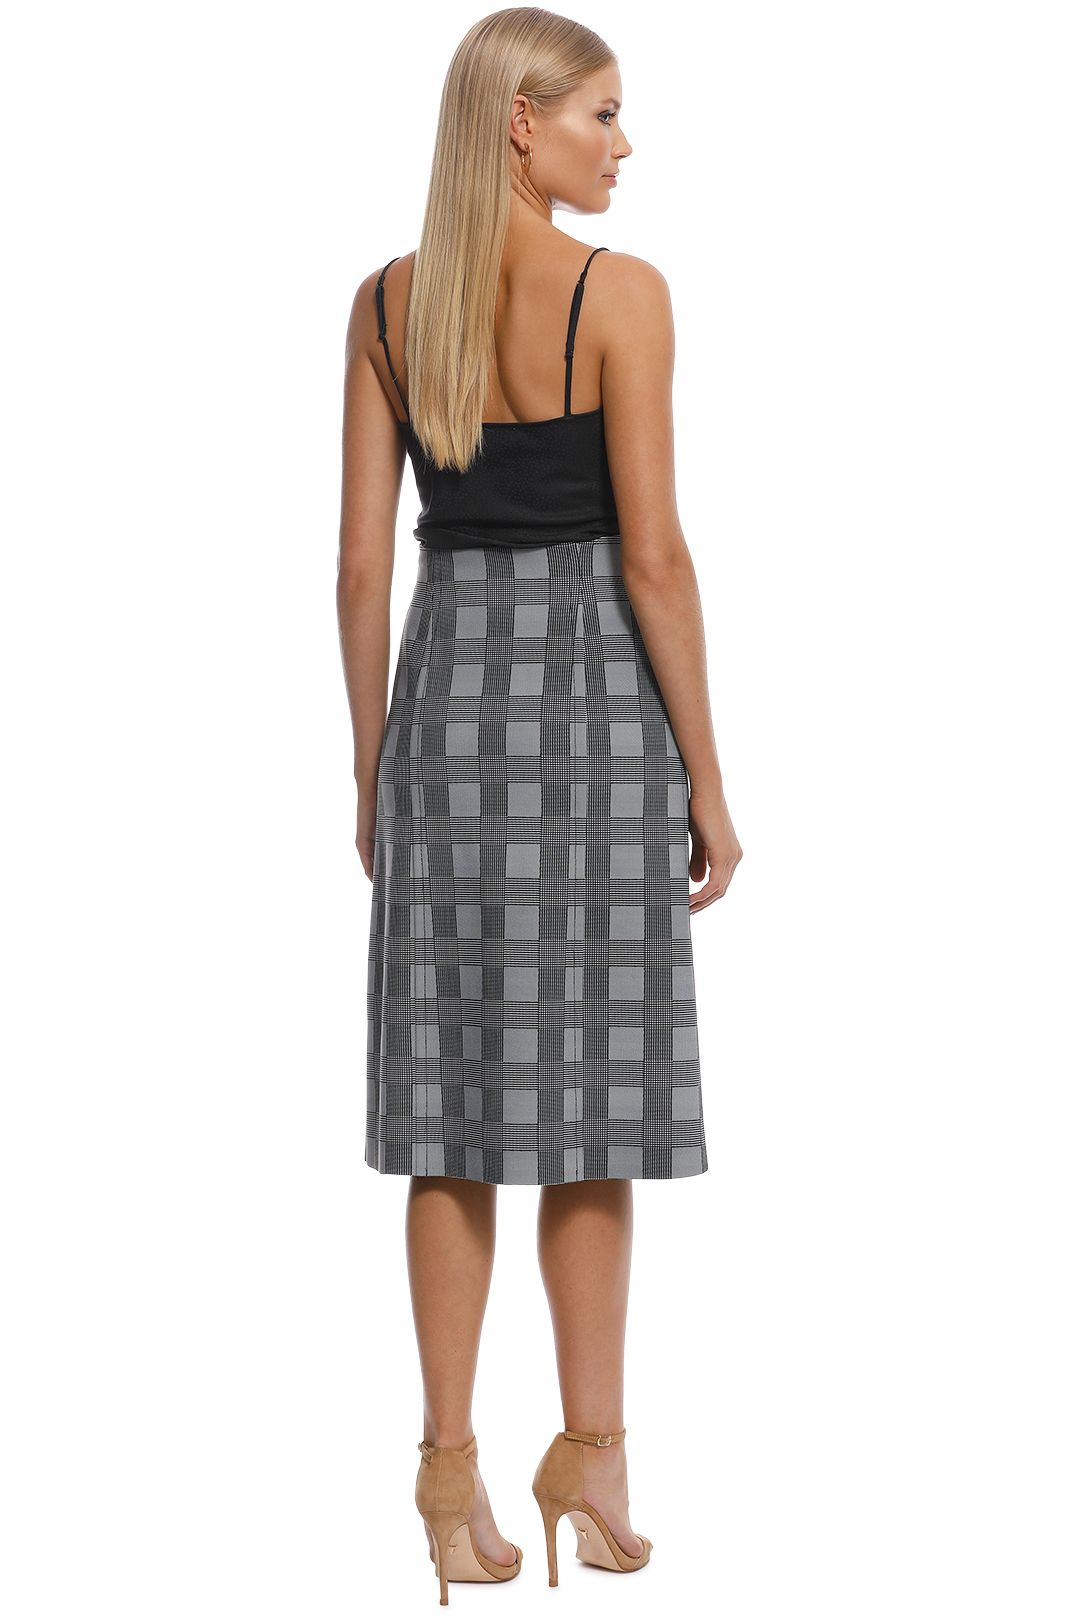 Scanlan Theodore - Scuba Prince of Wales Skirt - Check - Back